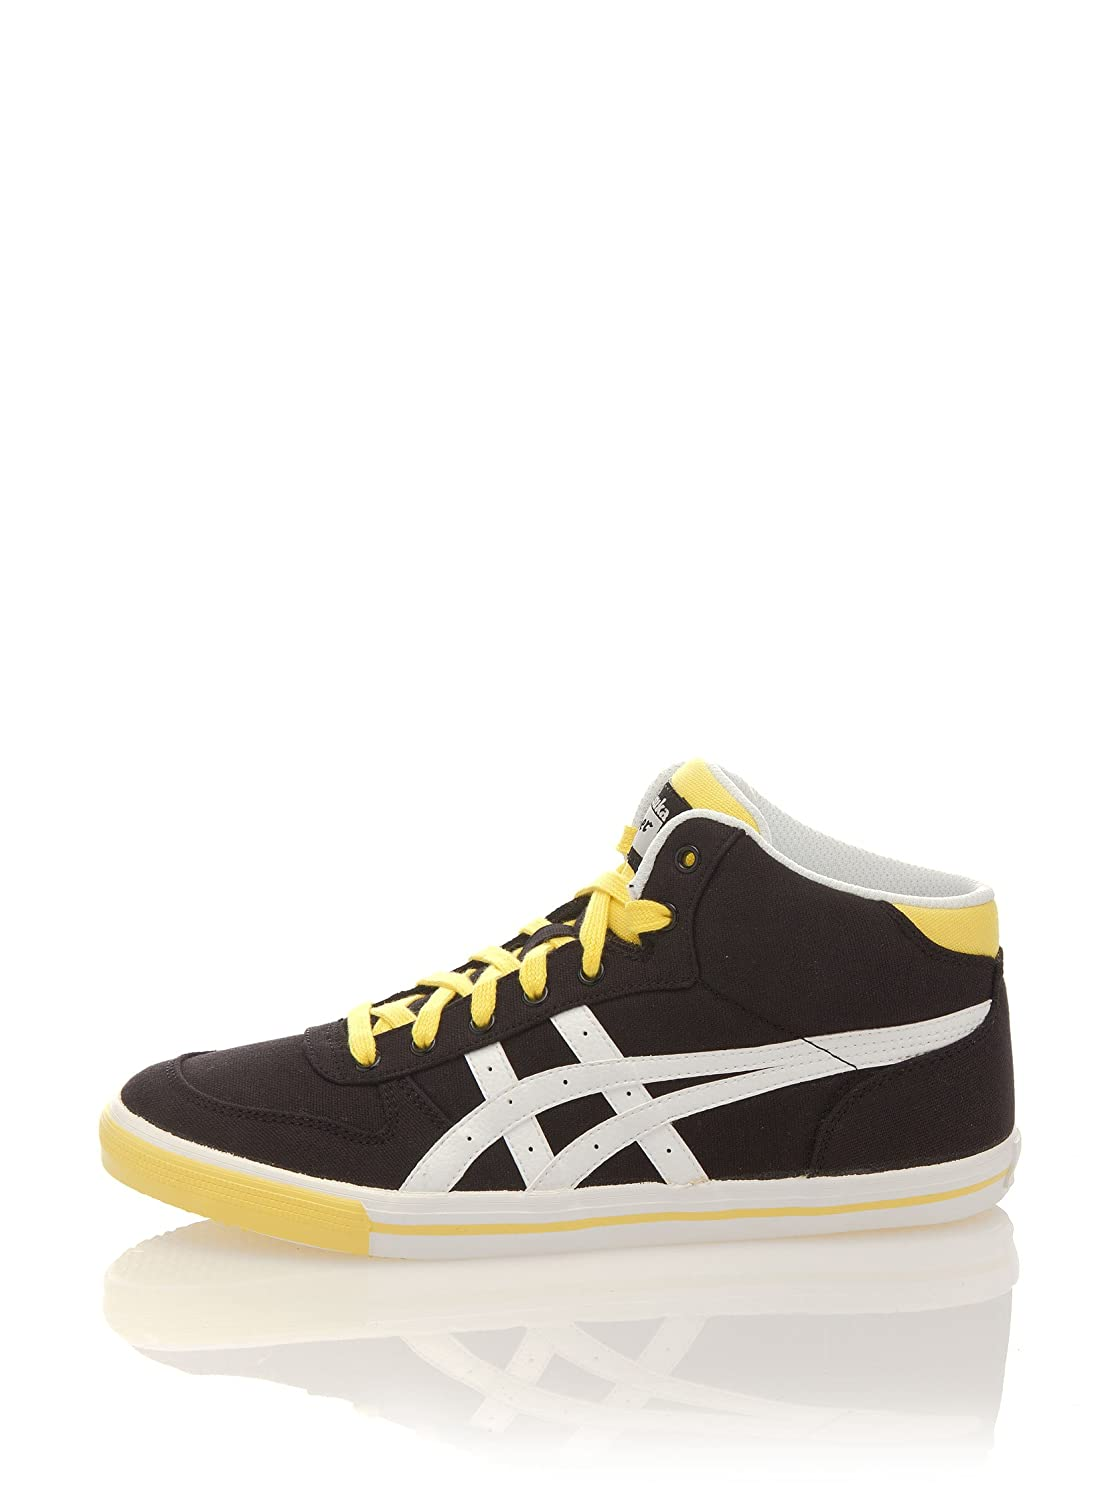 huge discount 20216 67f7d ASICS ONITSUKA TIGER AARON MT MID TOP TRAINERS SHOES MEXICO ...